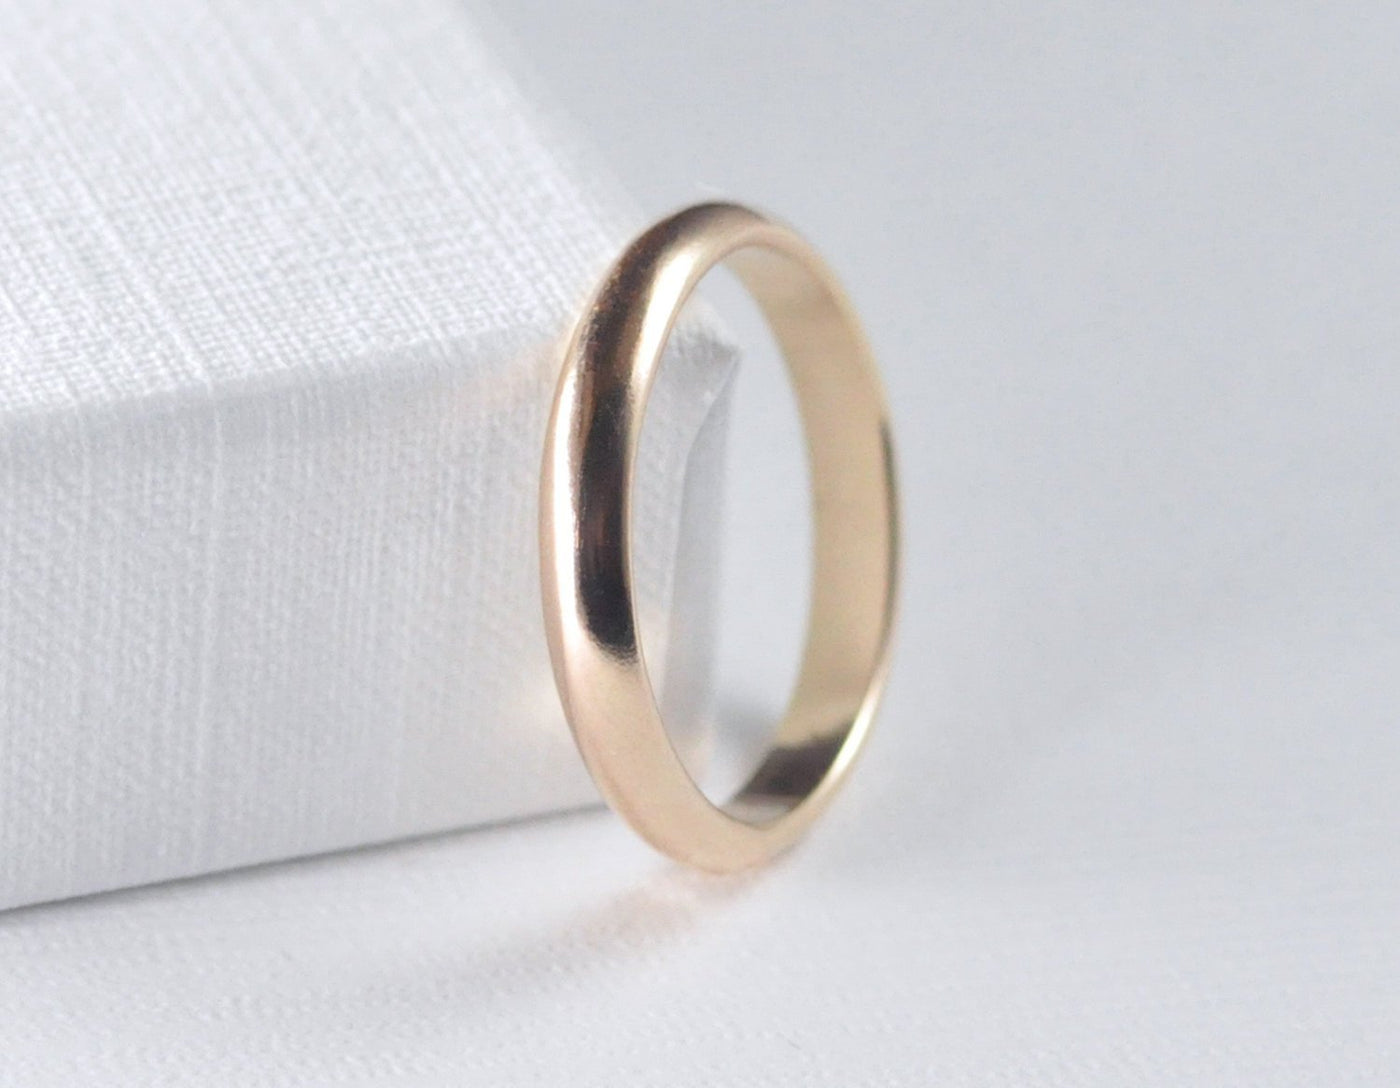 3mm gold wedding ban for men, unisex gold wedding ring, 14 karat wedding band, karat1424